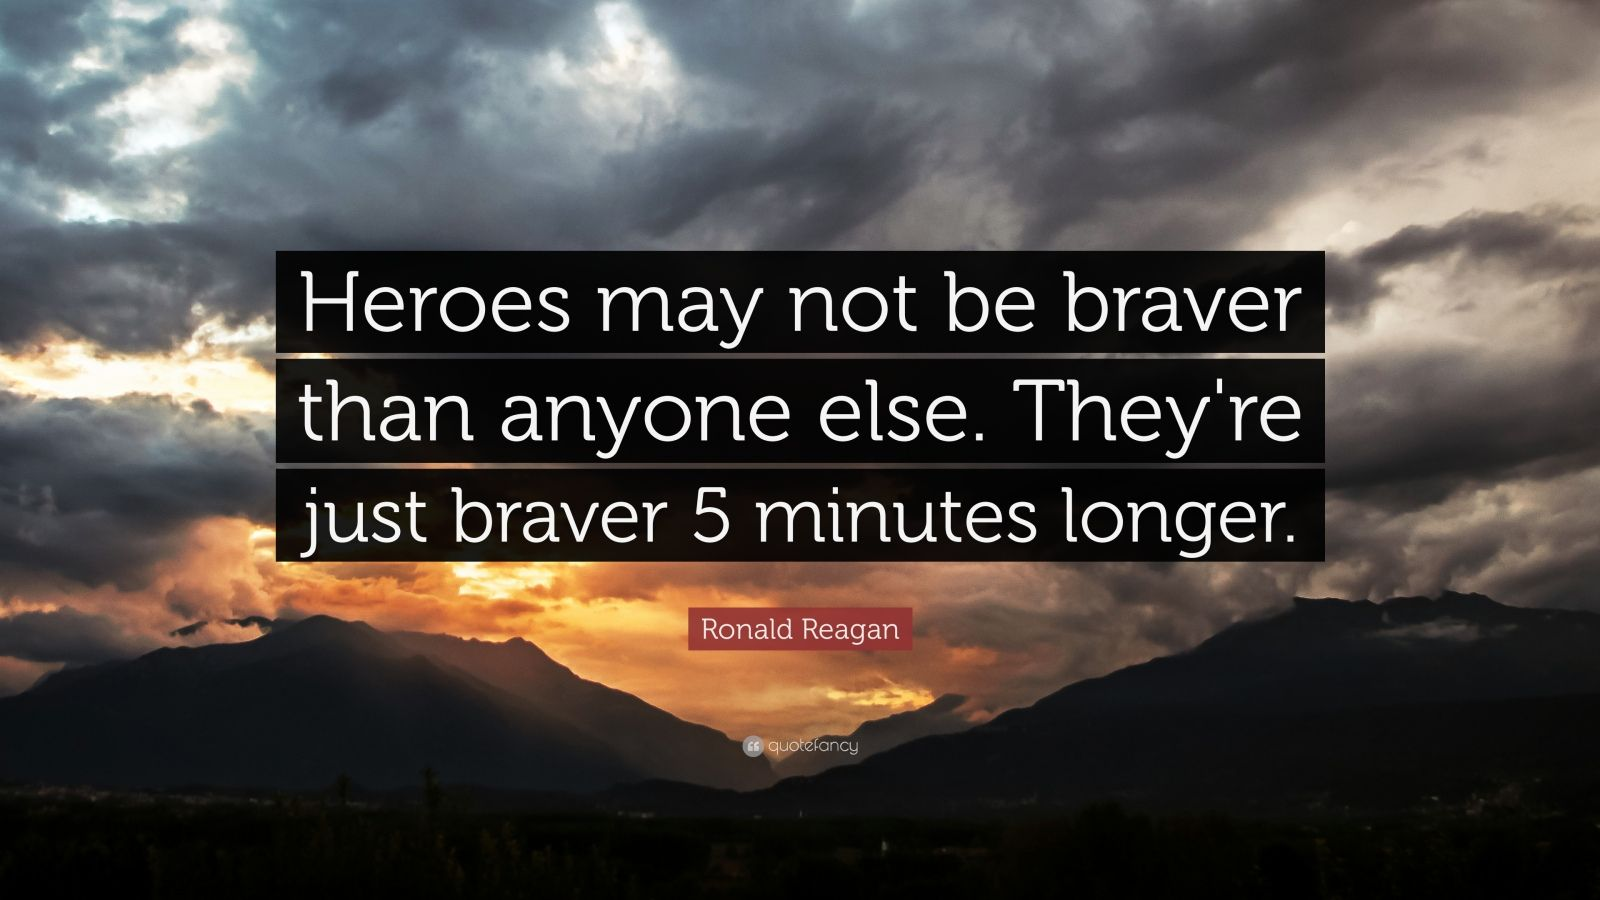 """Ronald Reagan Quote: """"Heroes may not be braver than anyone else. They're just braver 5 minutes longer."""""""